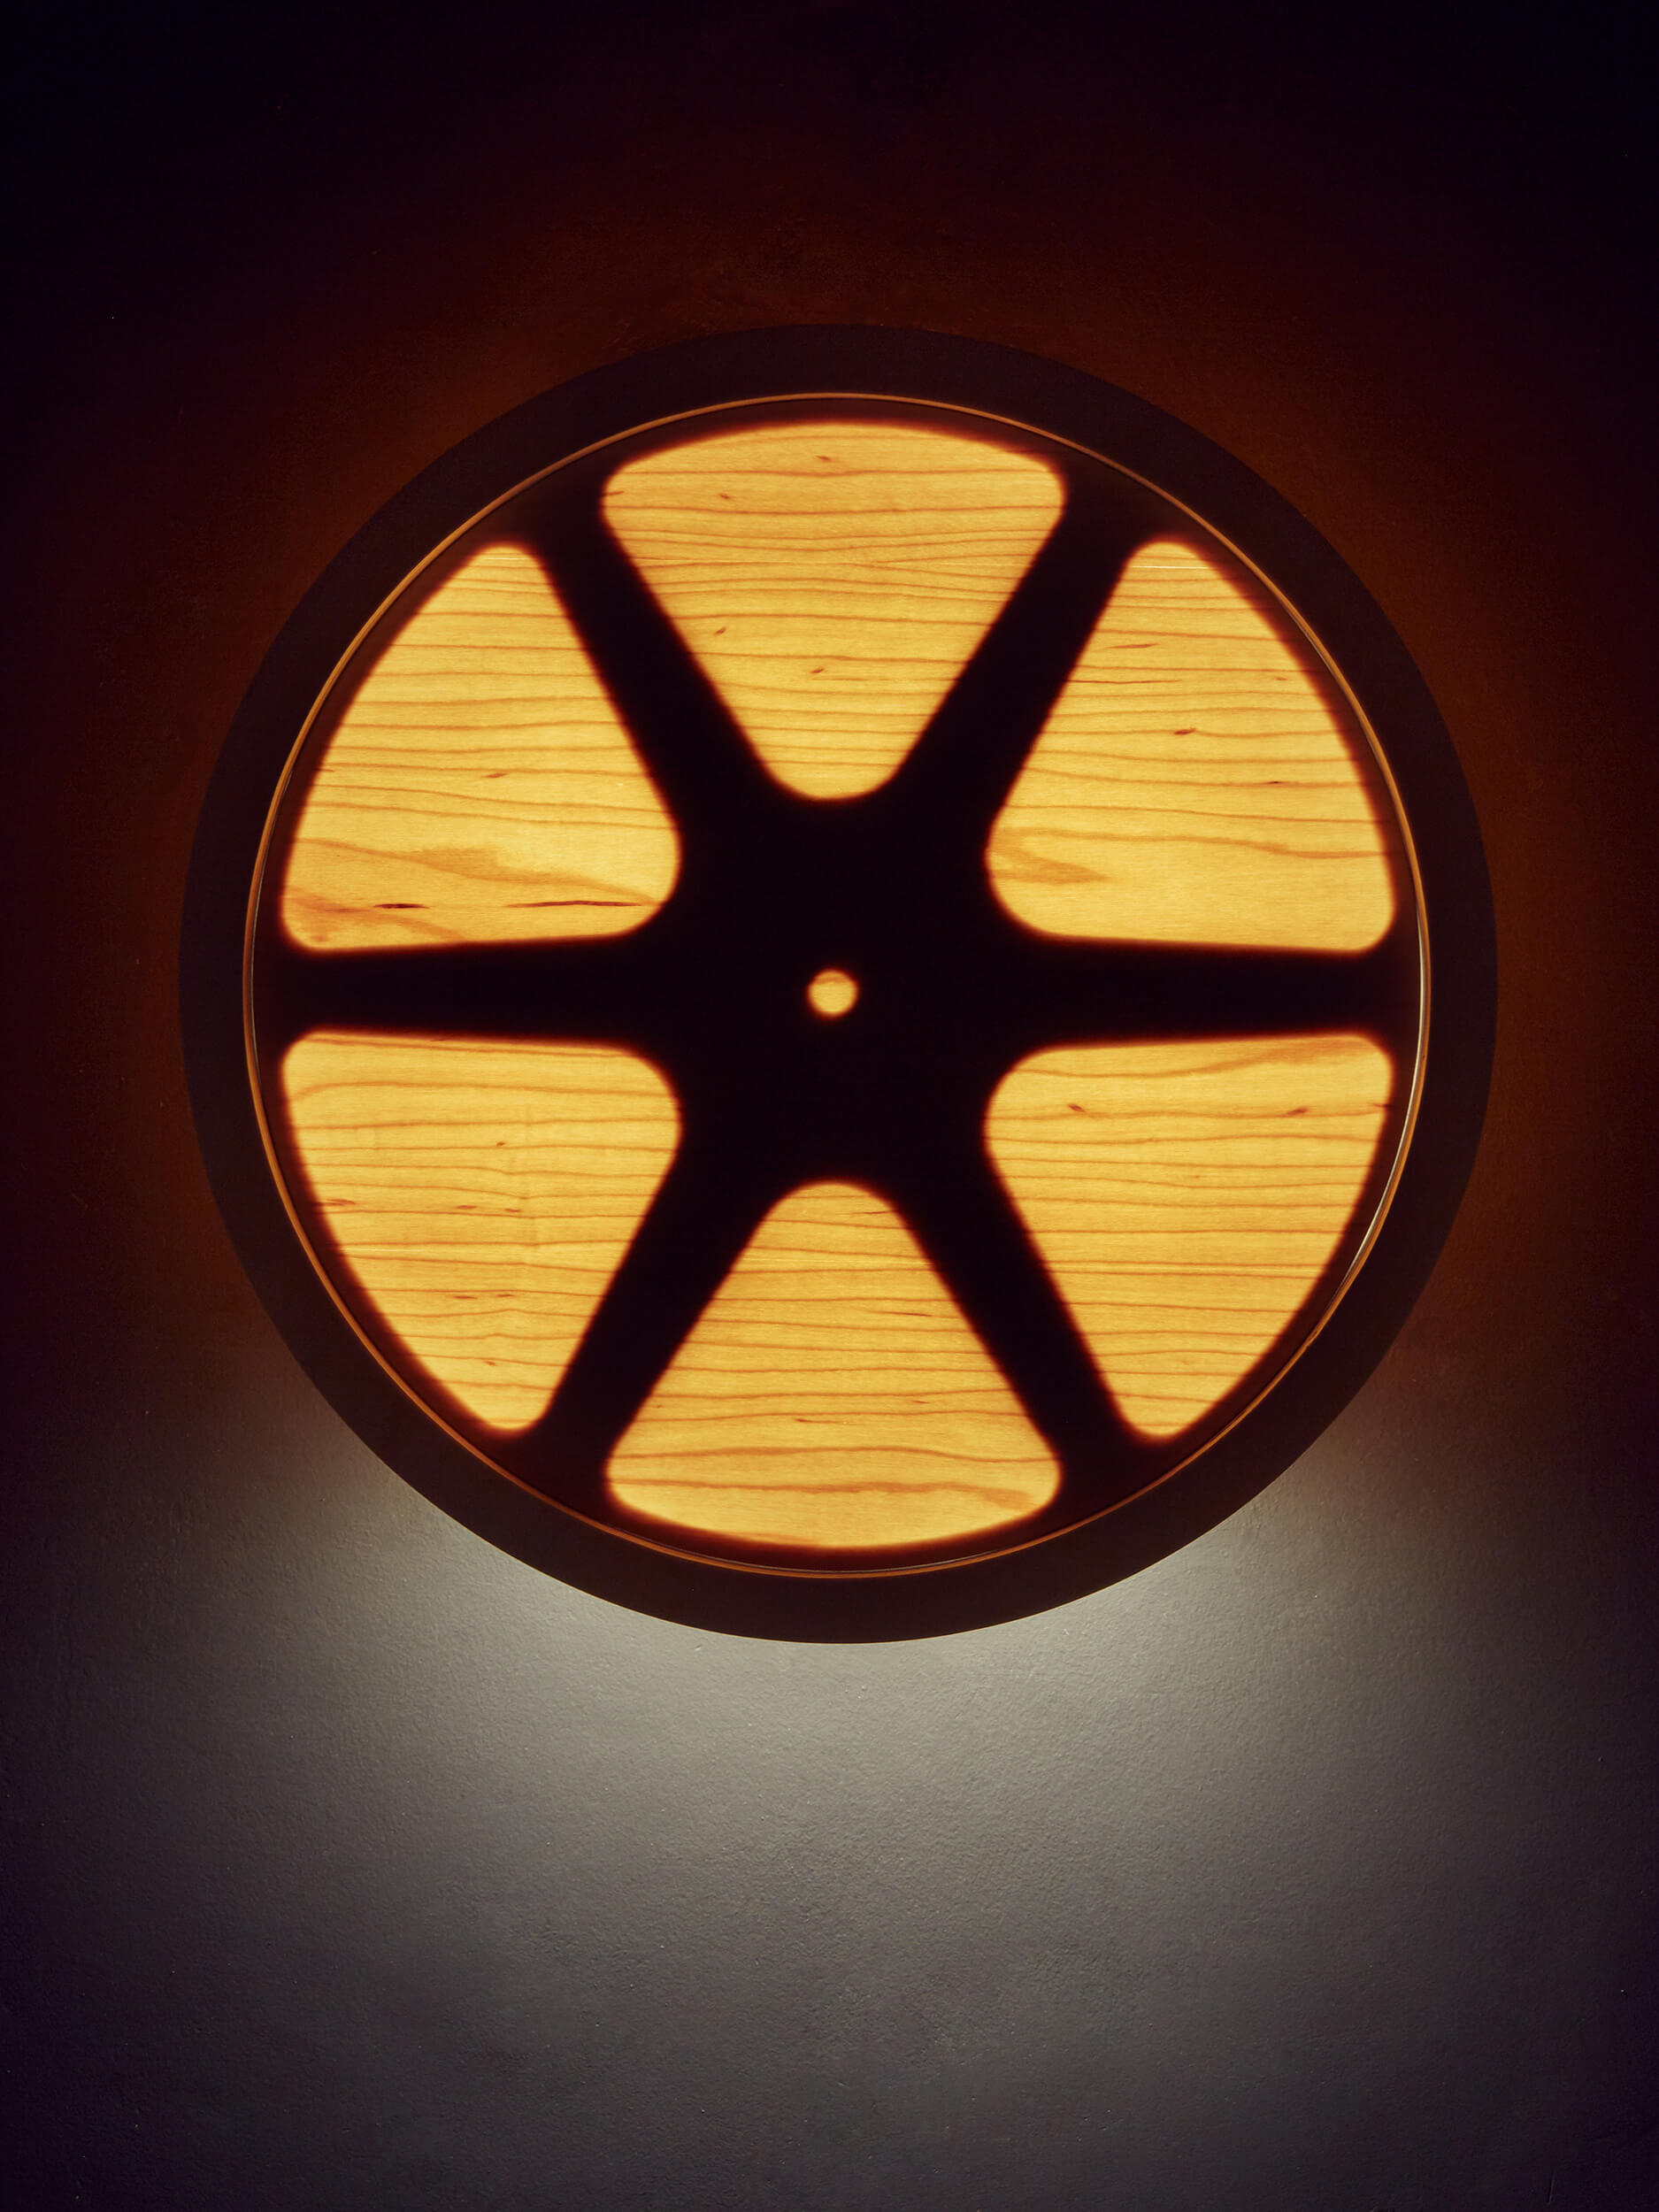 A close up of the wall mounted film reel Sunset lamp